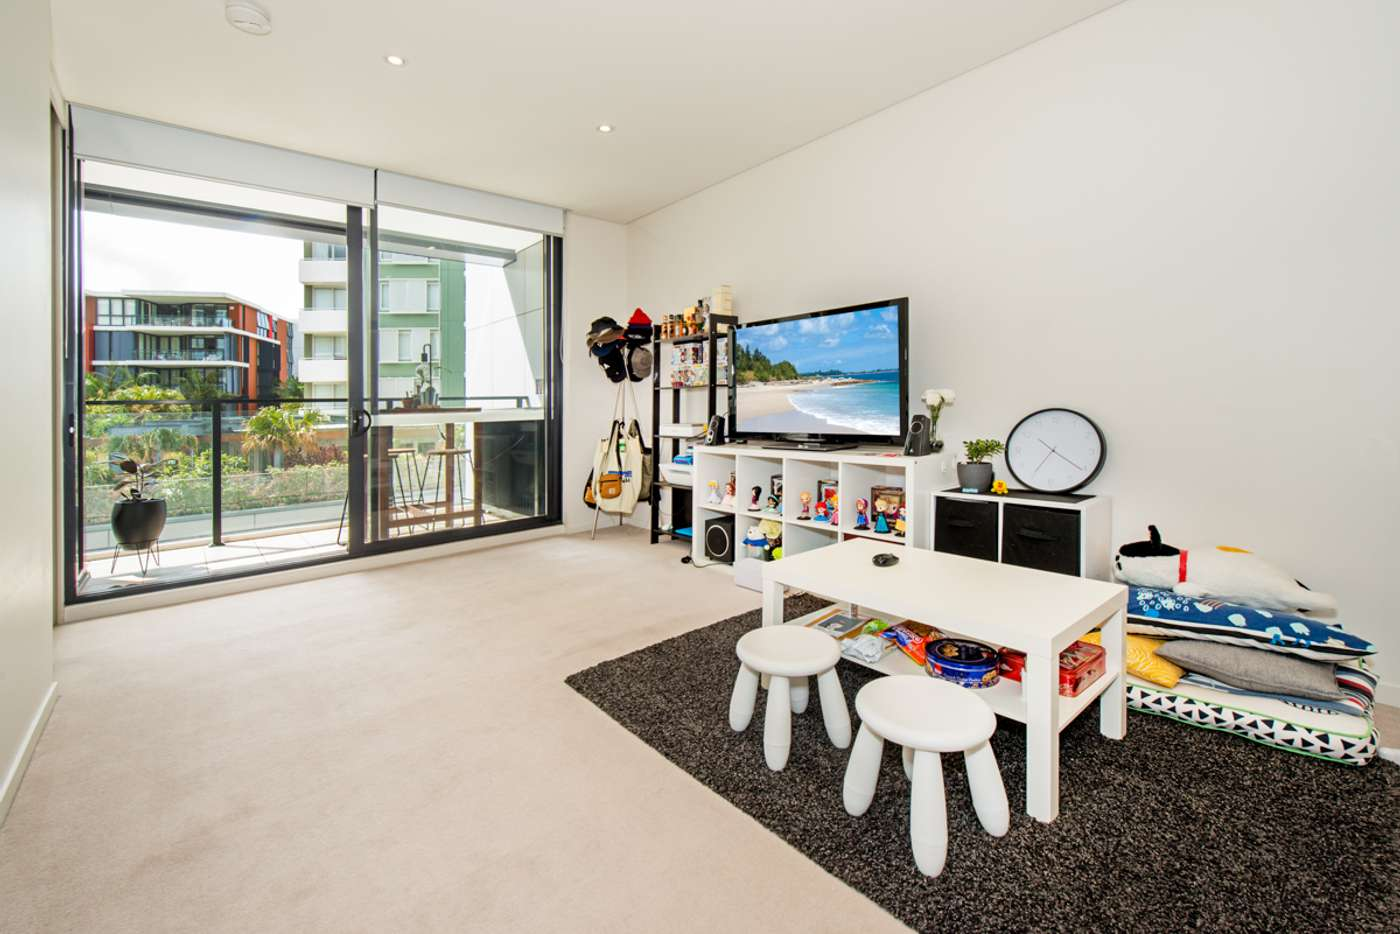 Main view of Homely apartment listing, 4 Devlin Street, Ryde NSW 2112